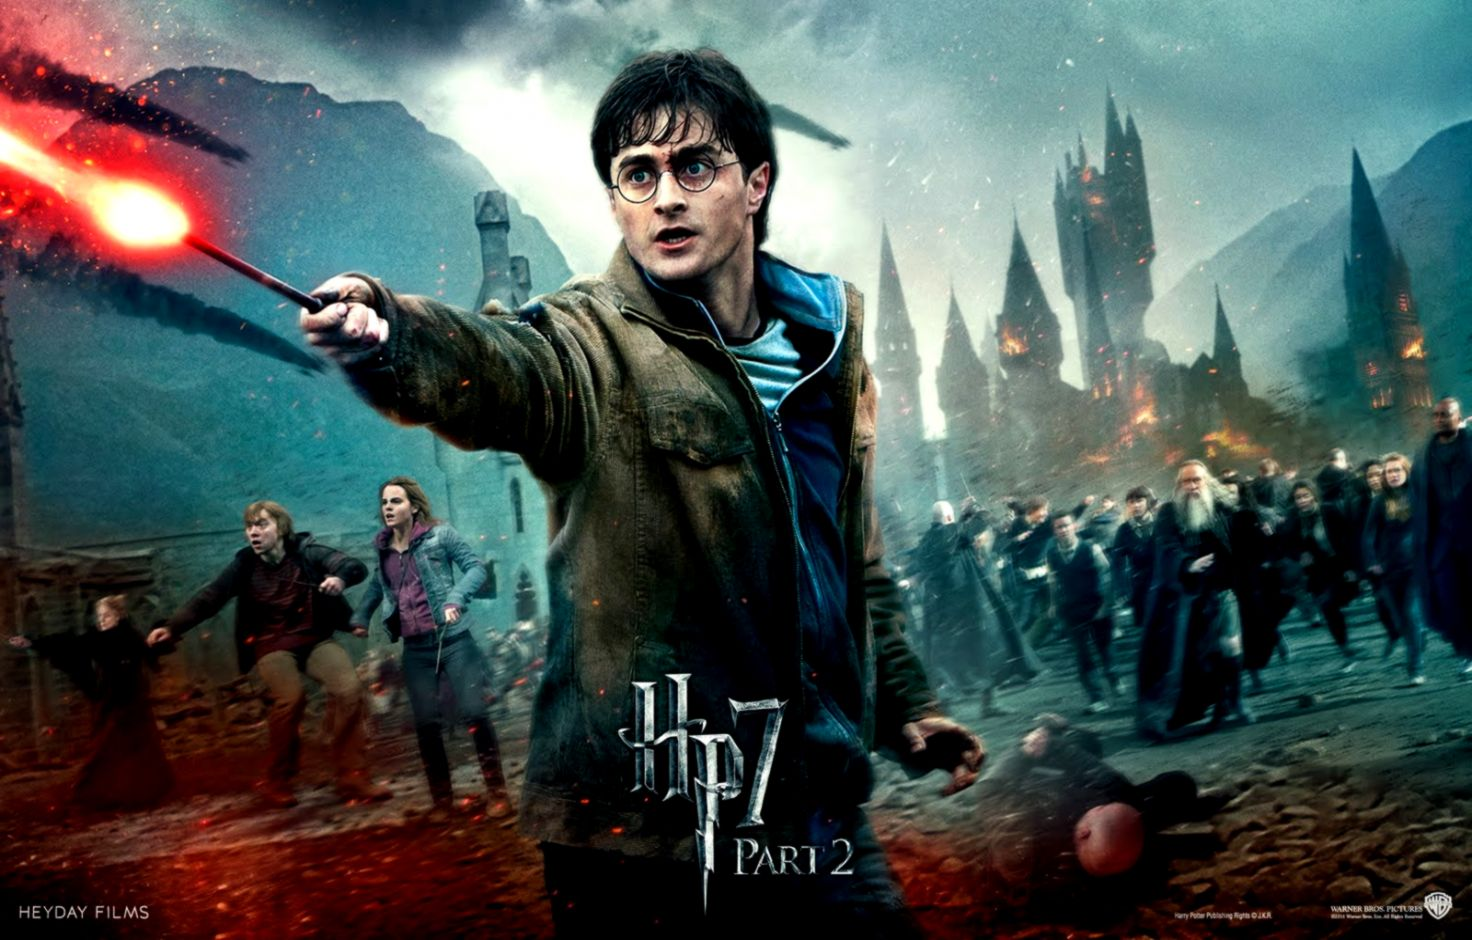 Harry Potter And The Deathly Hallows Video Game Wallpapers 1472x940